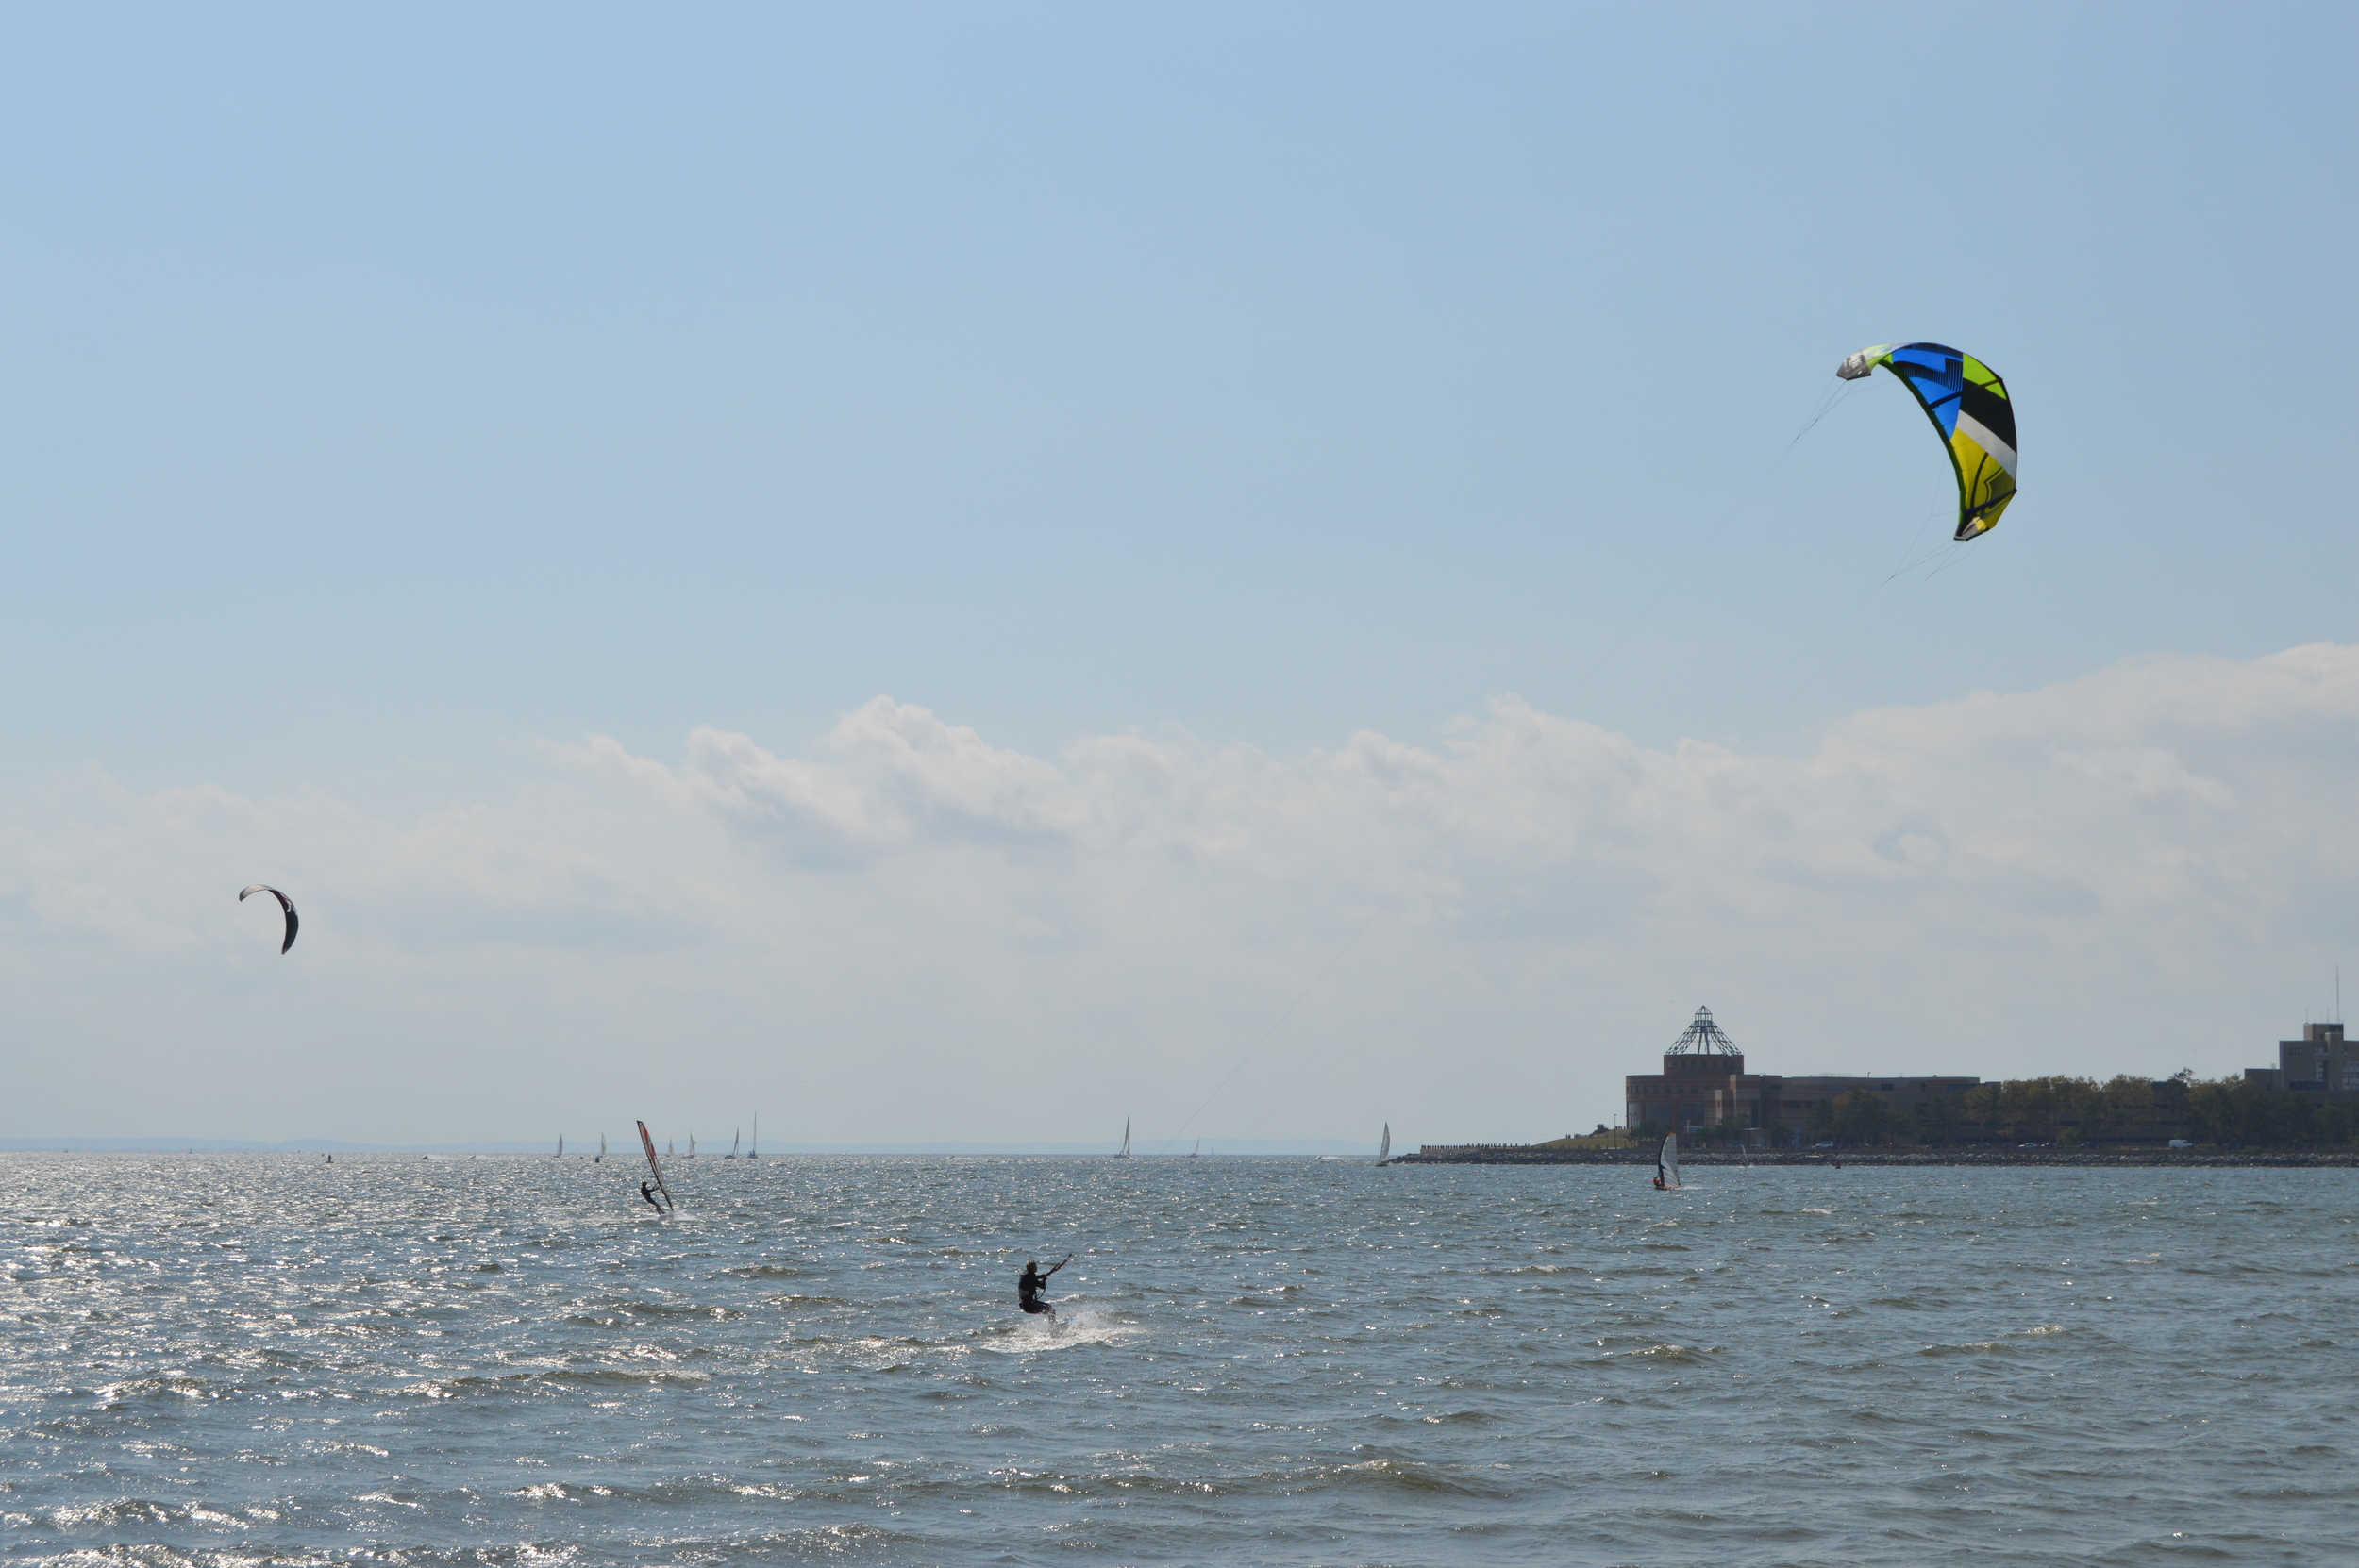 Plumb Beach Kite Surfing 9-20-2014.JPG